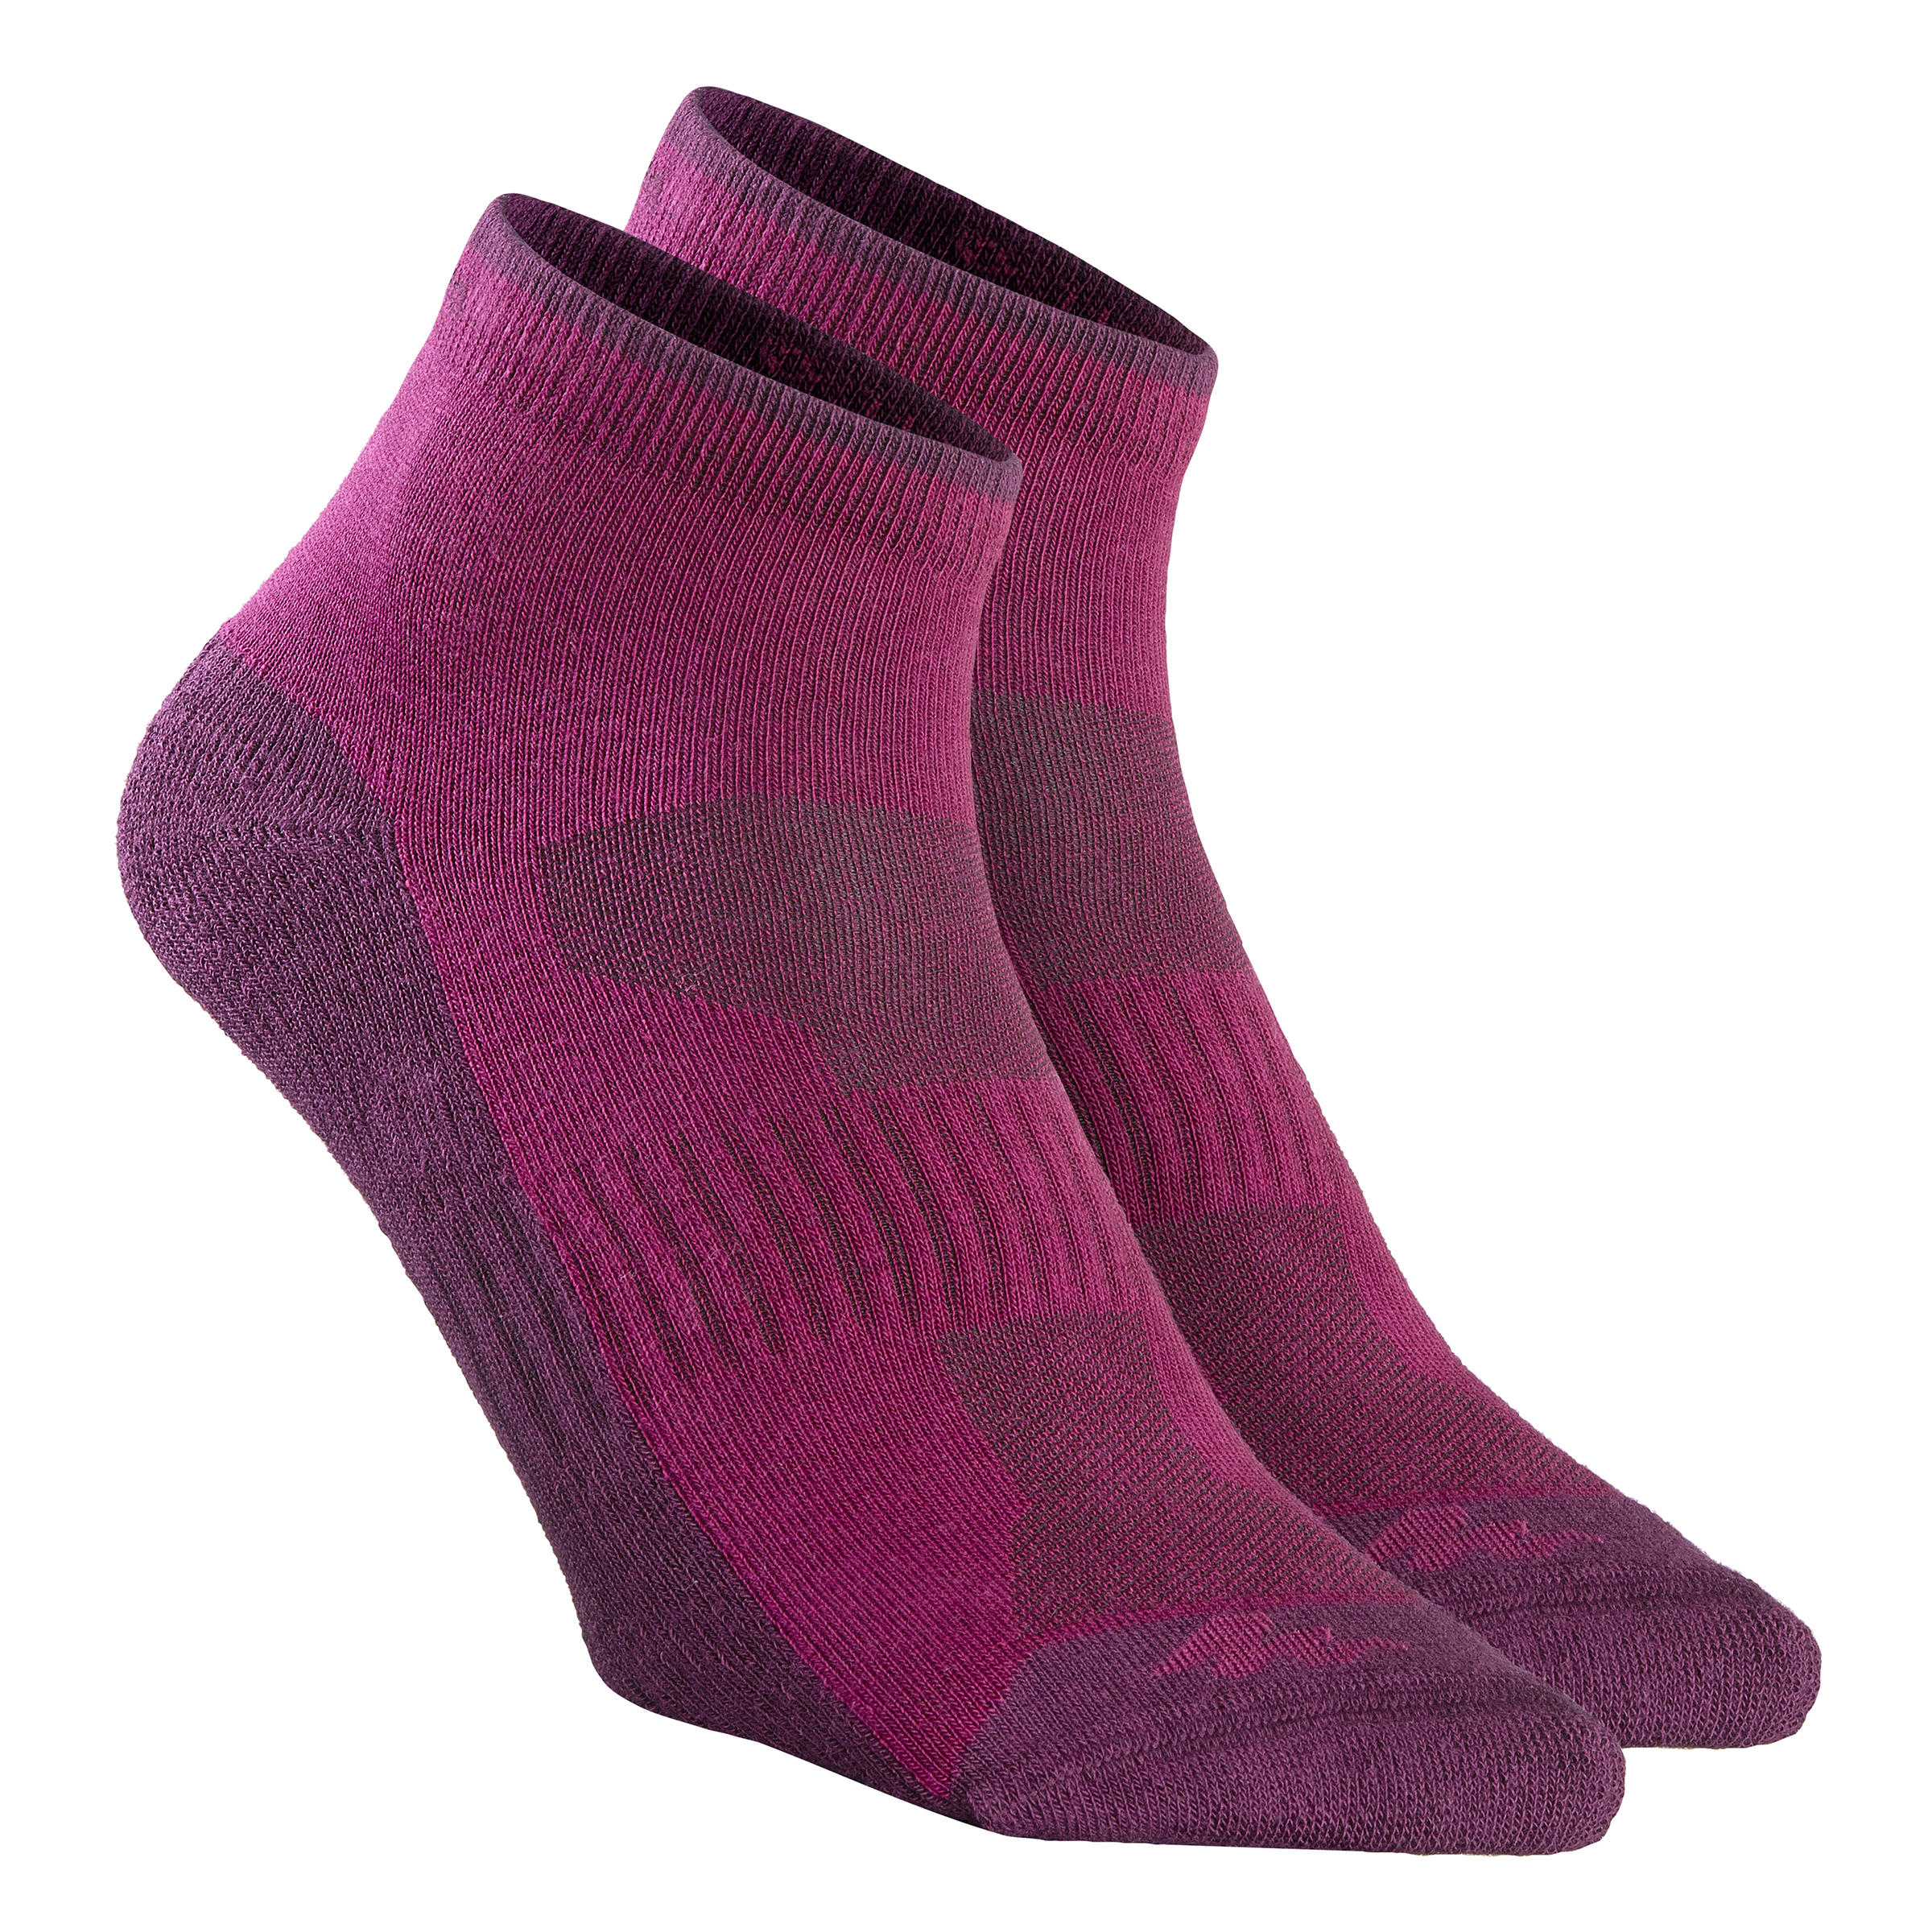 NH100 Country Walking Socks Mid x 2 Pairs - Purple